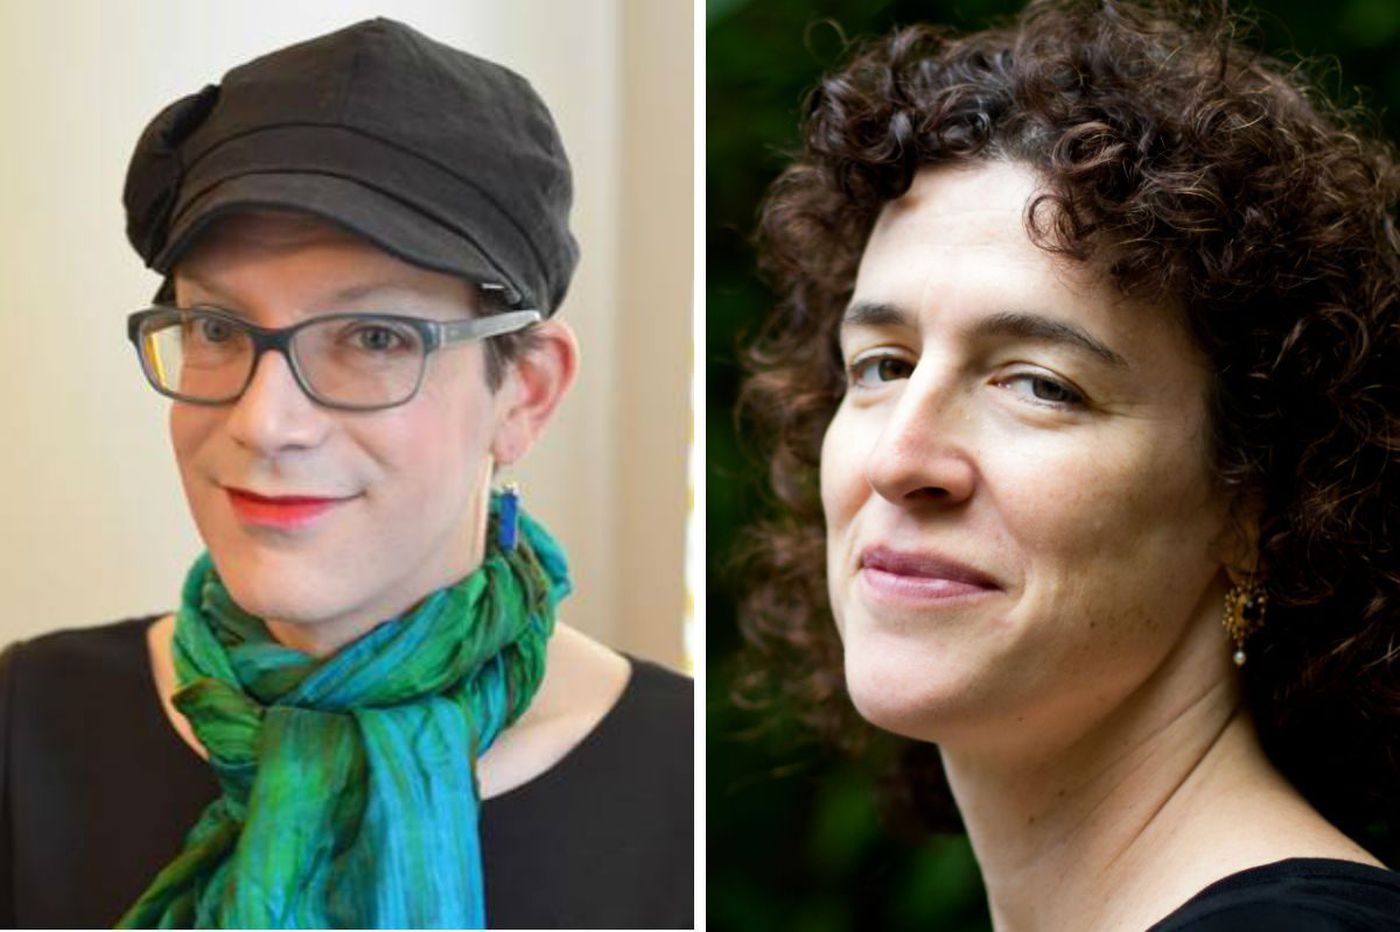 Stephanie Burt and Daisy Fried: Two poets share their charm at Big Blue Marble